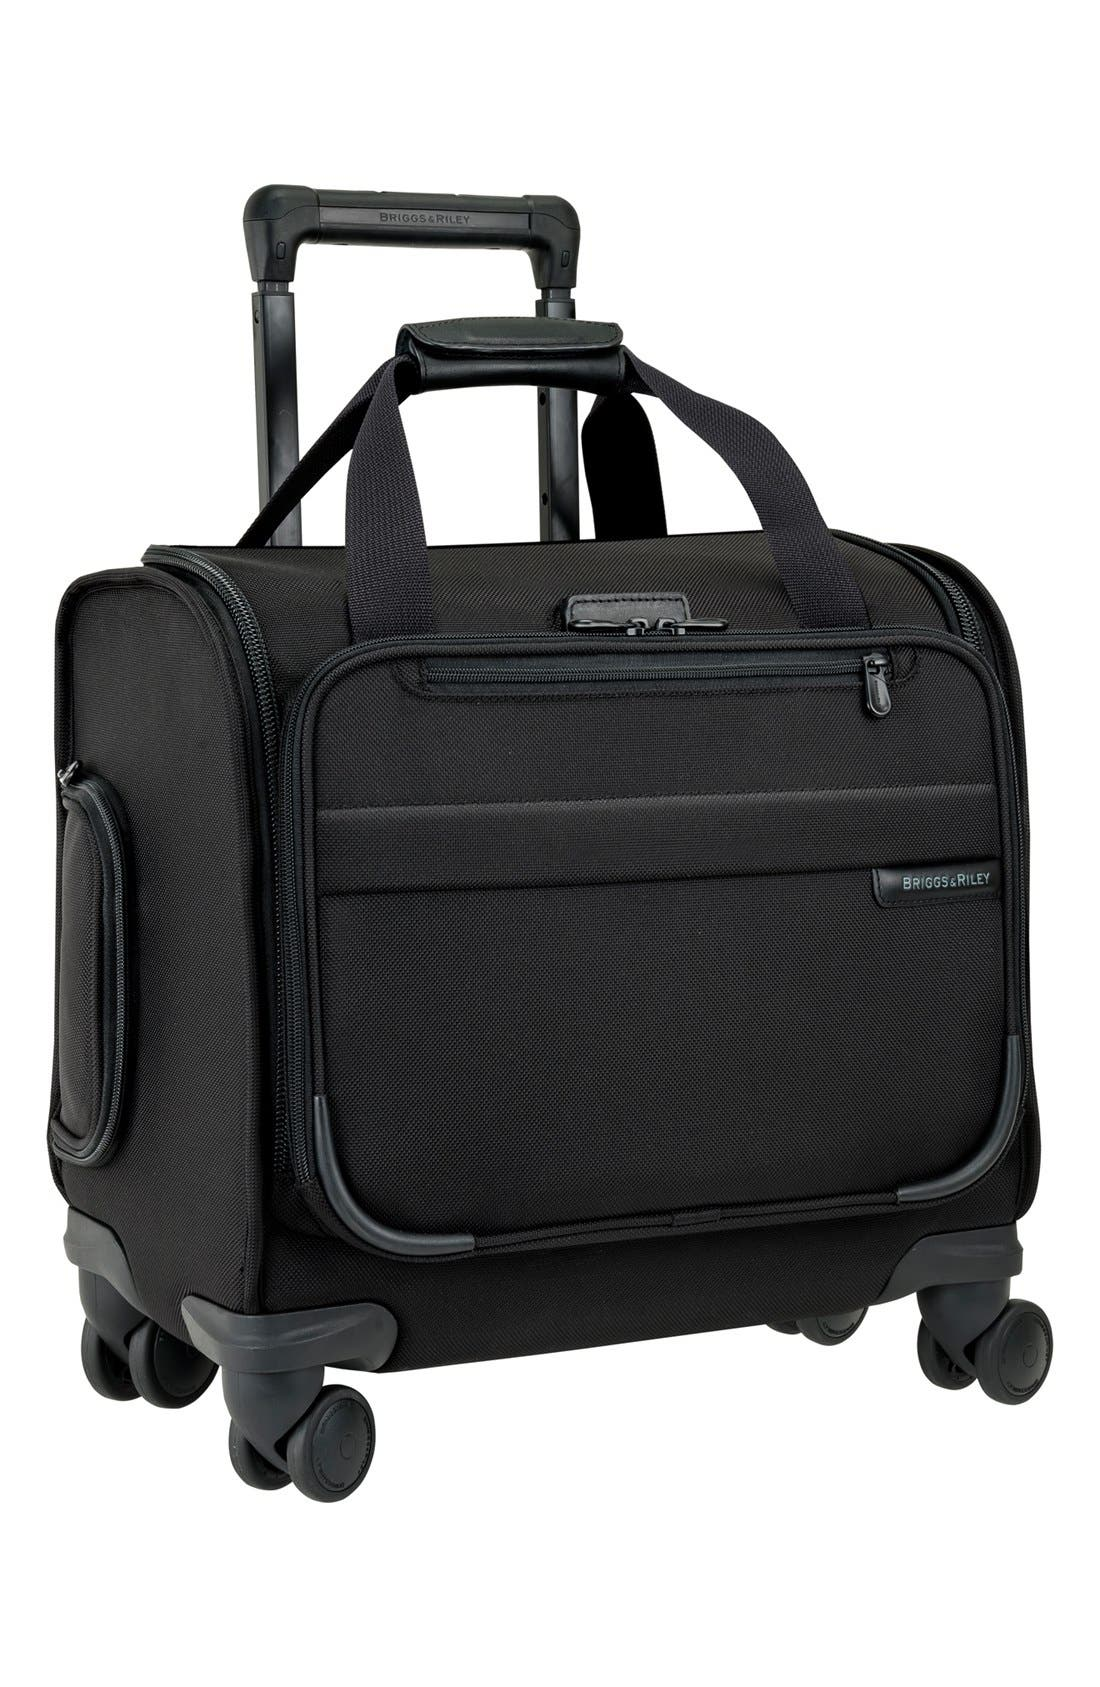 Alternate Image 1 Selected - Briggs & Riley 'Cabin' Spinner Carry-On (16 Inch)